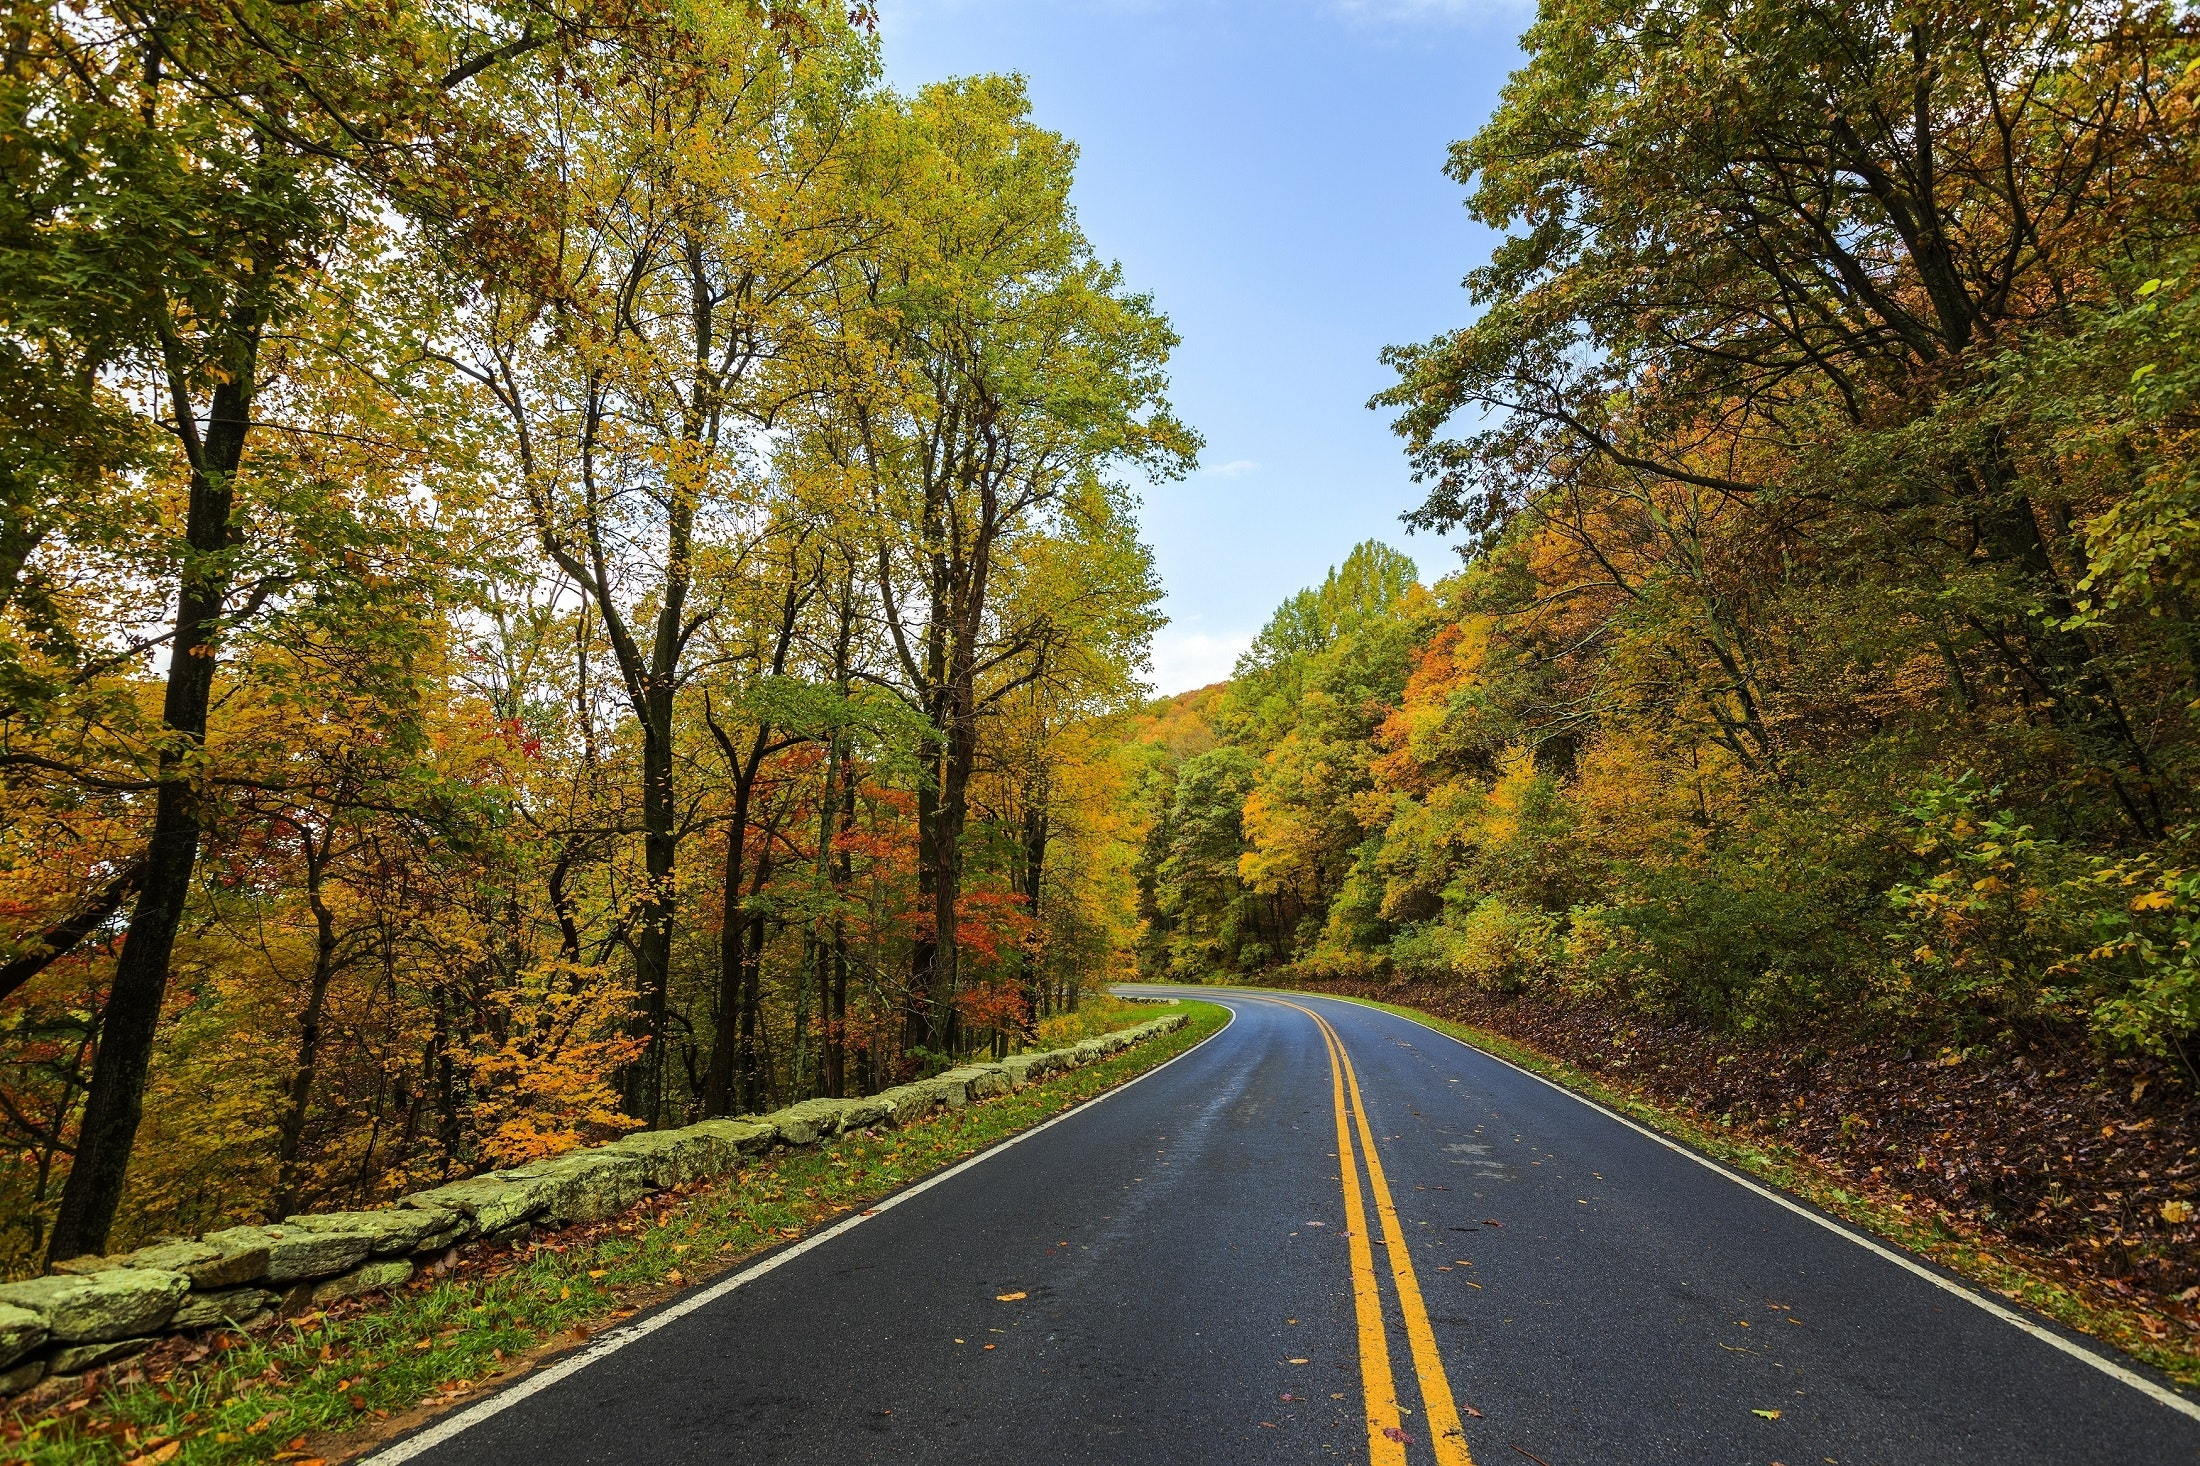 The road in the Fall